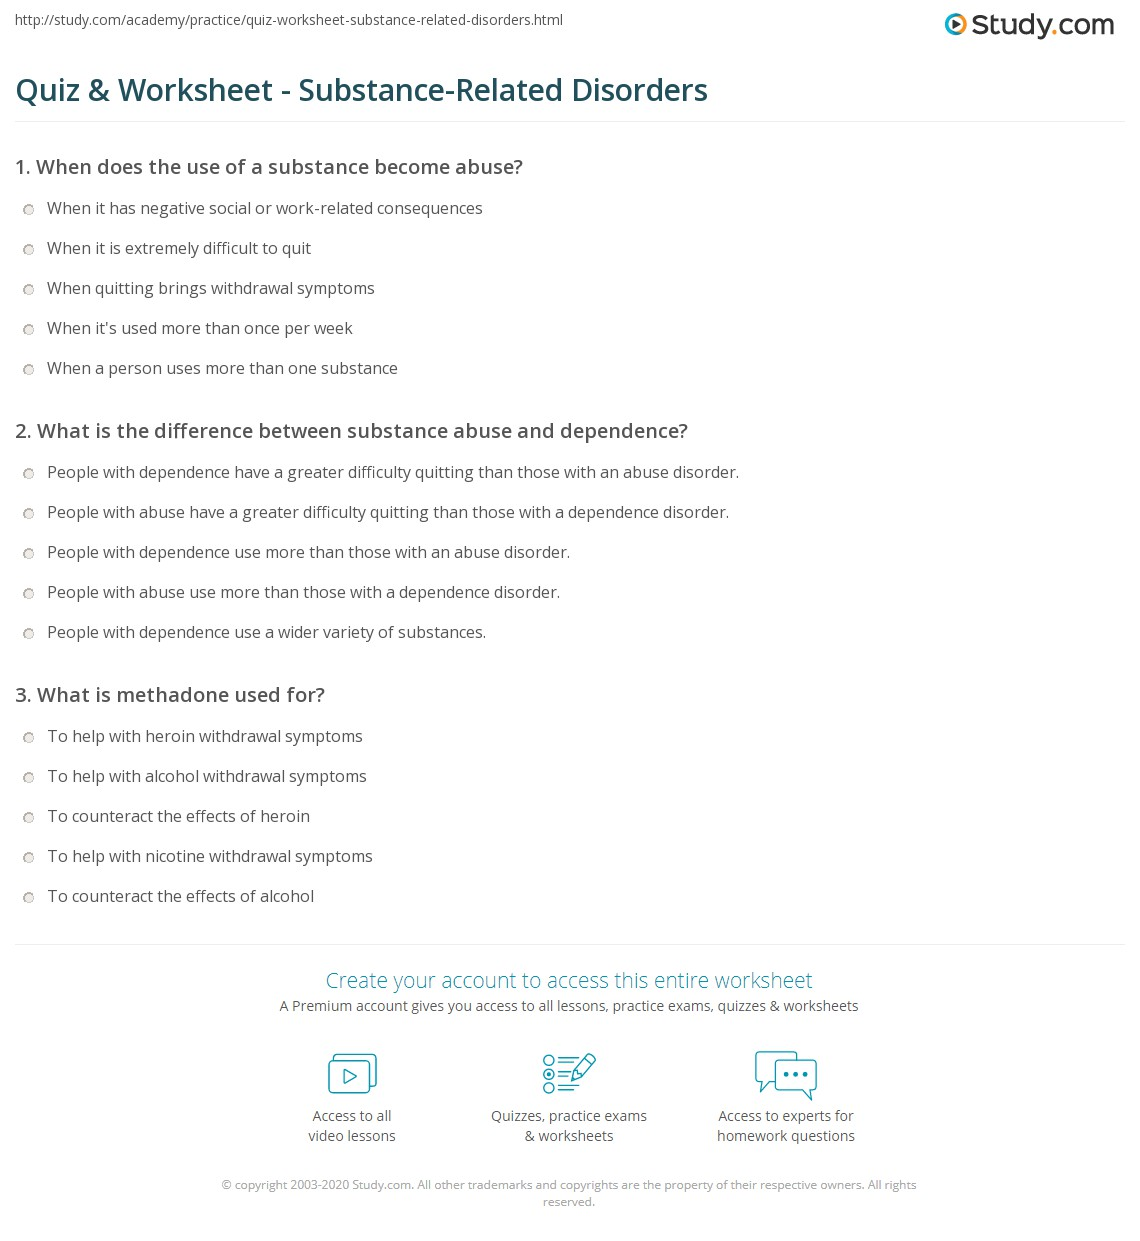 quiz & worksheet - substance-related disorders | study